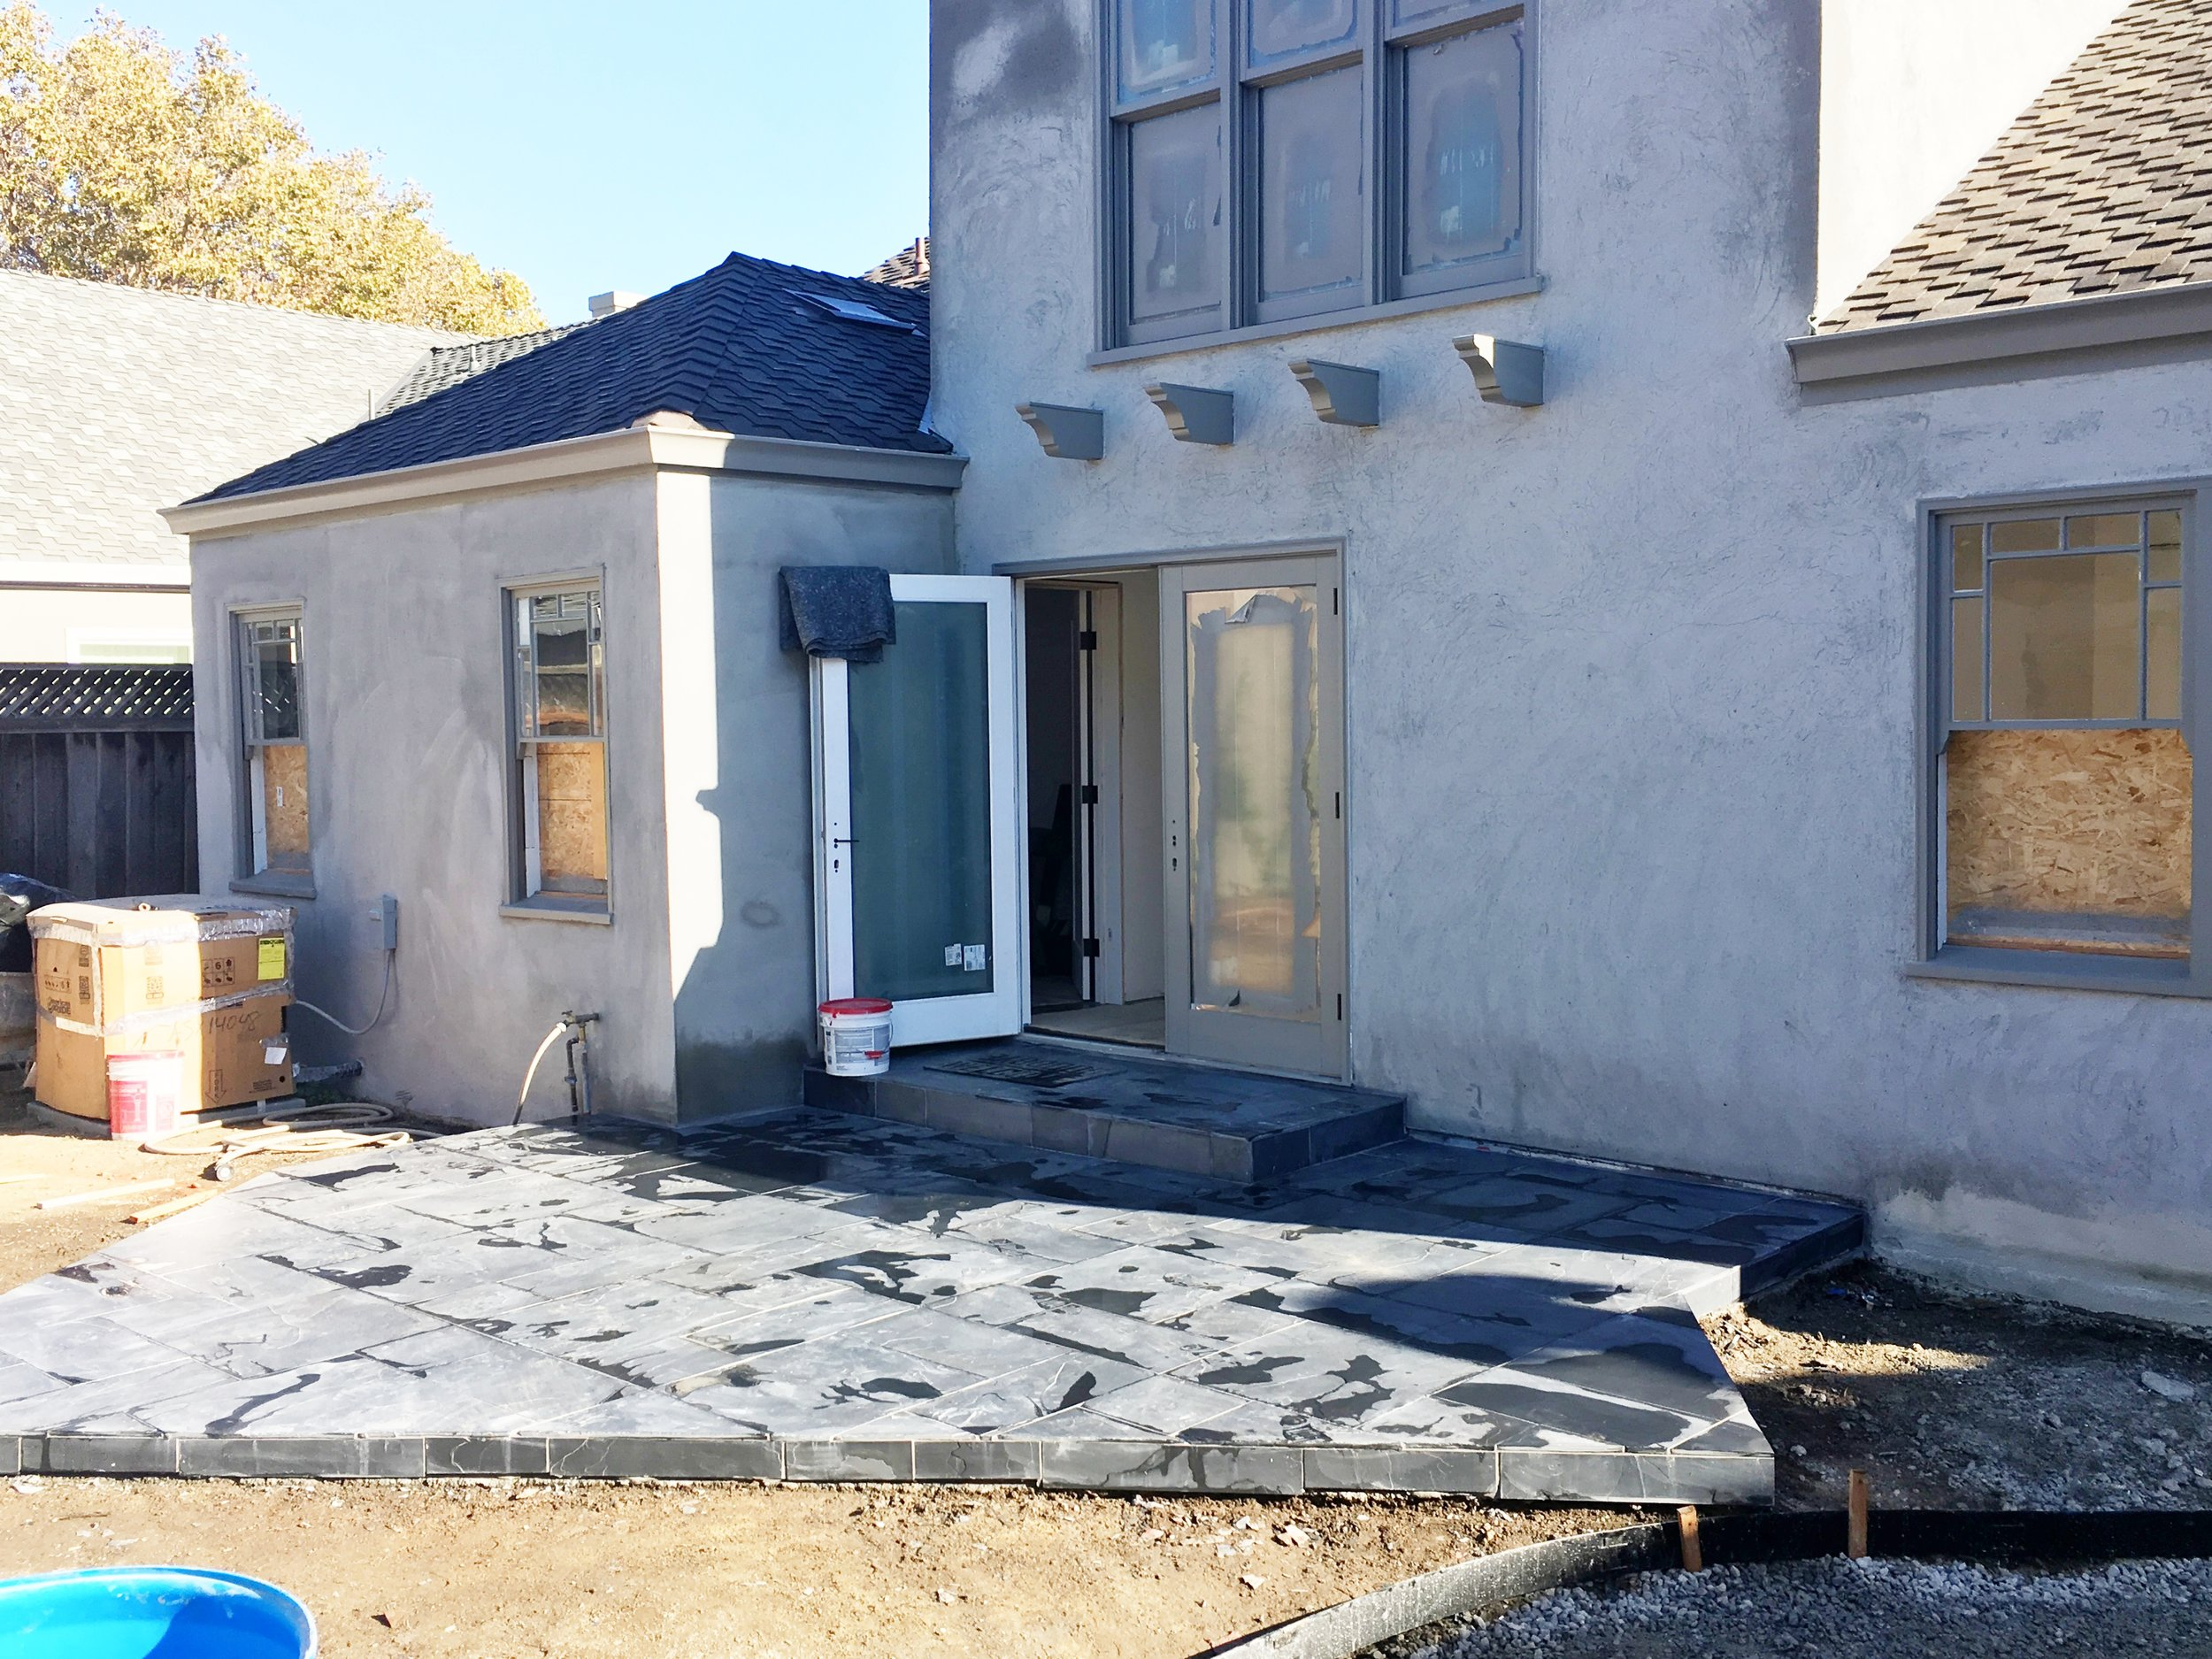 Completely by accident, we landed on this (super reasonable) charcoal gray slate for the patios in a Versailles pattern. Its dirty but you get the gist.